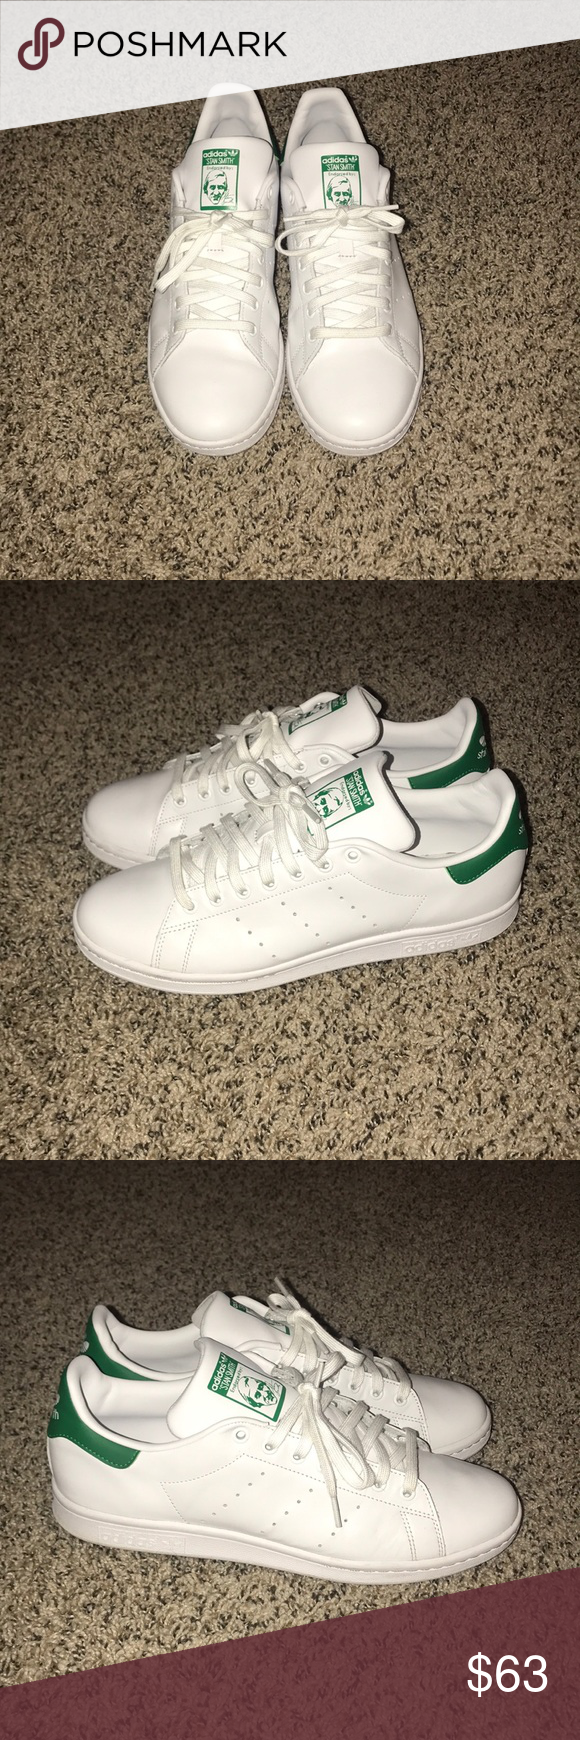 Adidas Stan Smith Shoes Mens Us11 Adidas Shoes Stan Smith Stan Smith Shoes Adidas Stan Smith